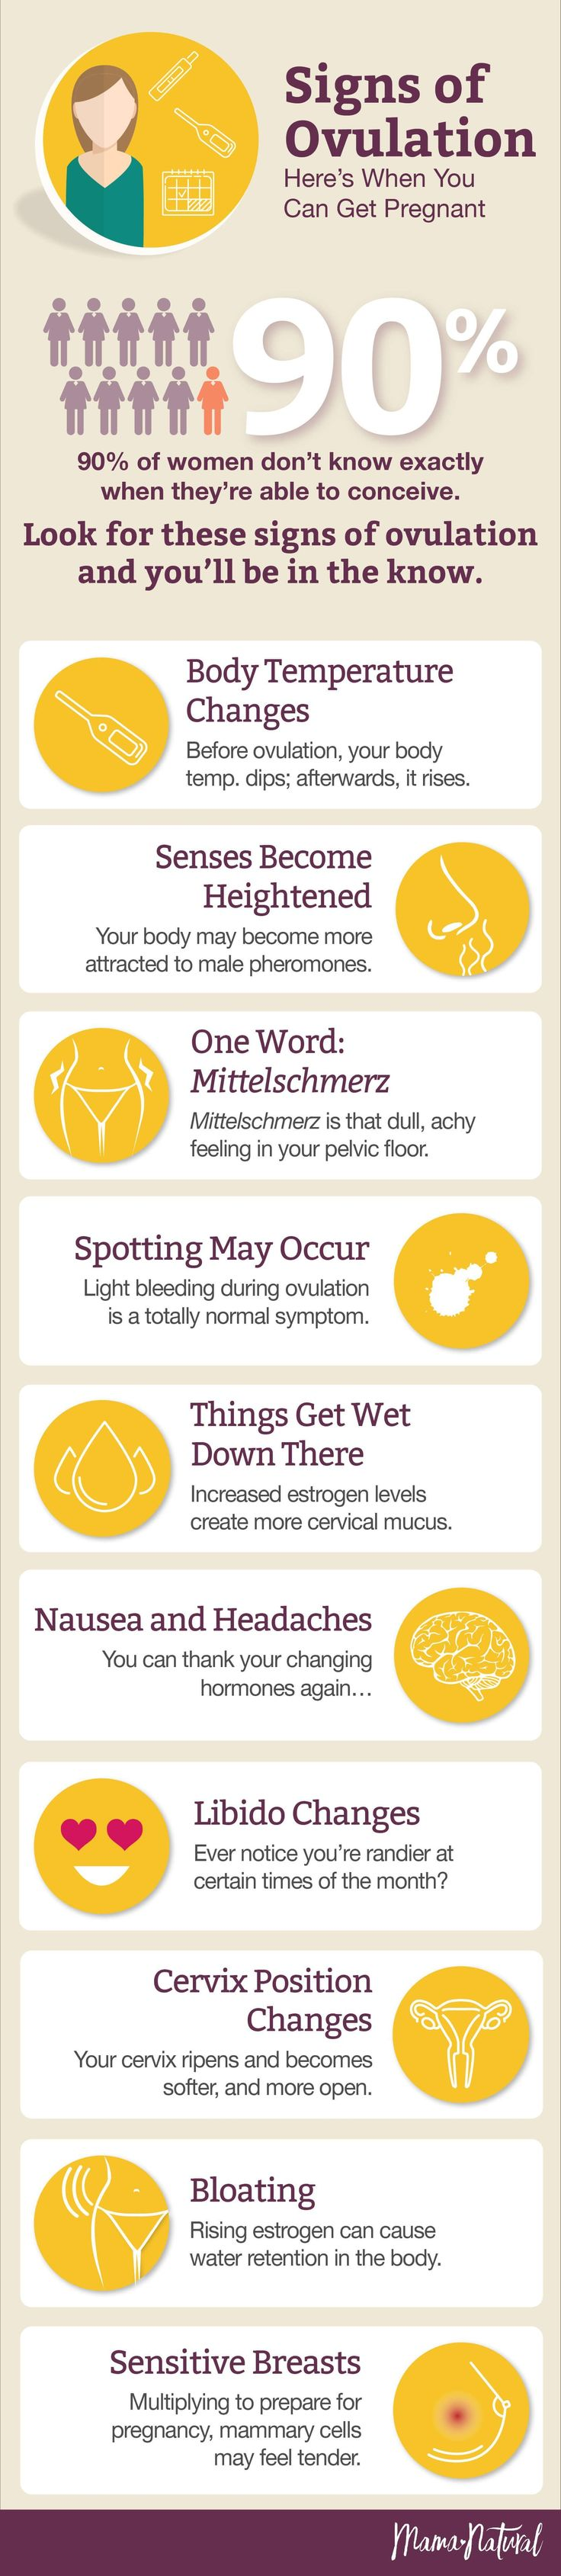 What are the signs of ovulation? How can you tell when you are most fertile... and most likely to get pregnant? How long does ovulation last? Find out here! https://www.mamanatural.com/signs-of-ovulation/ #NaturalPregnancyAdvice